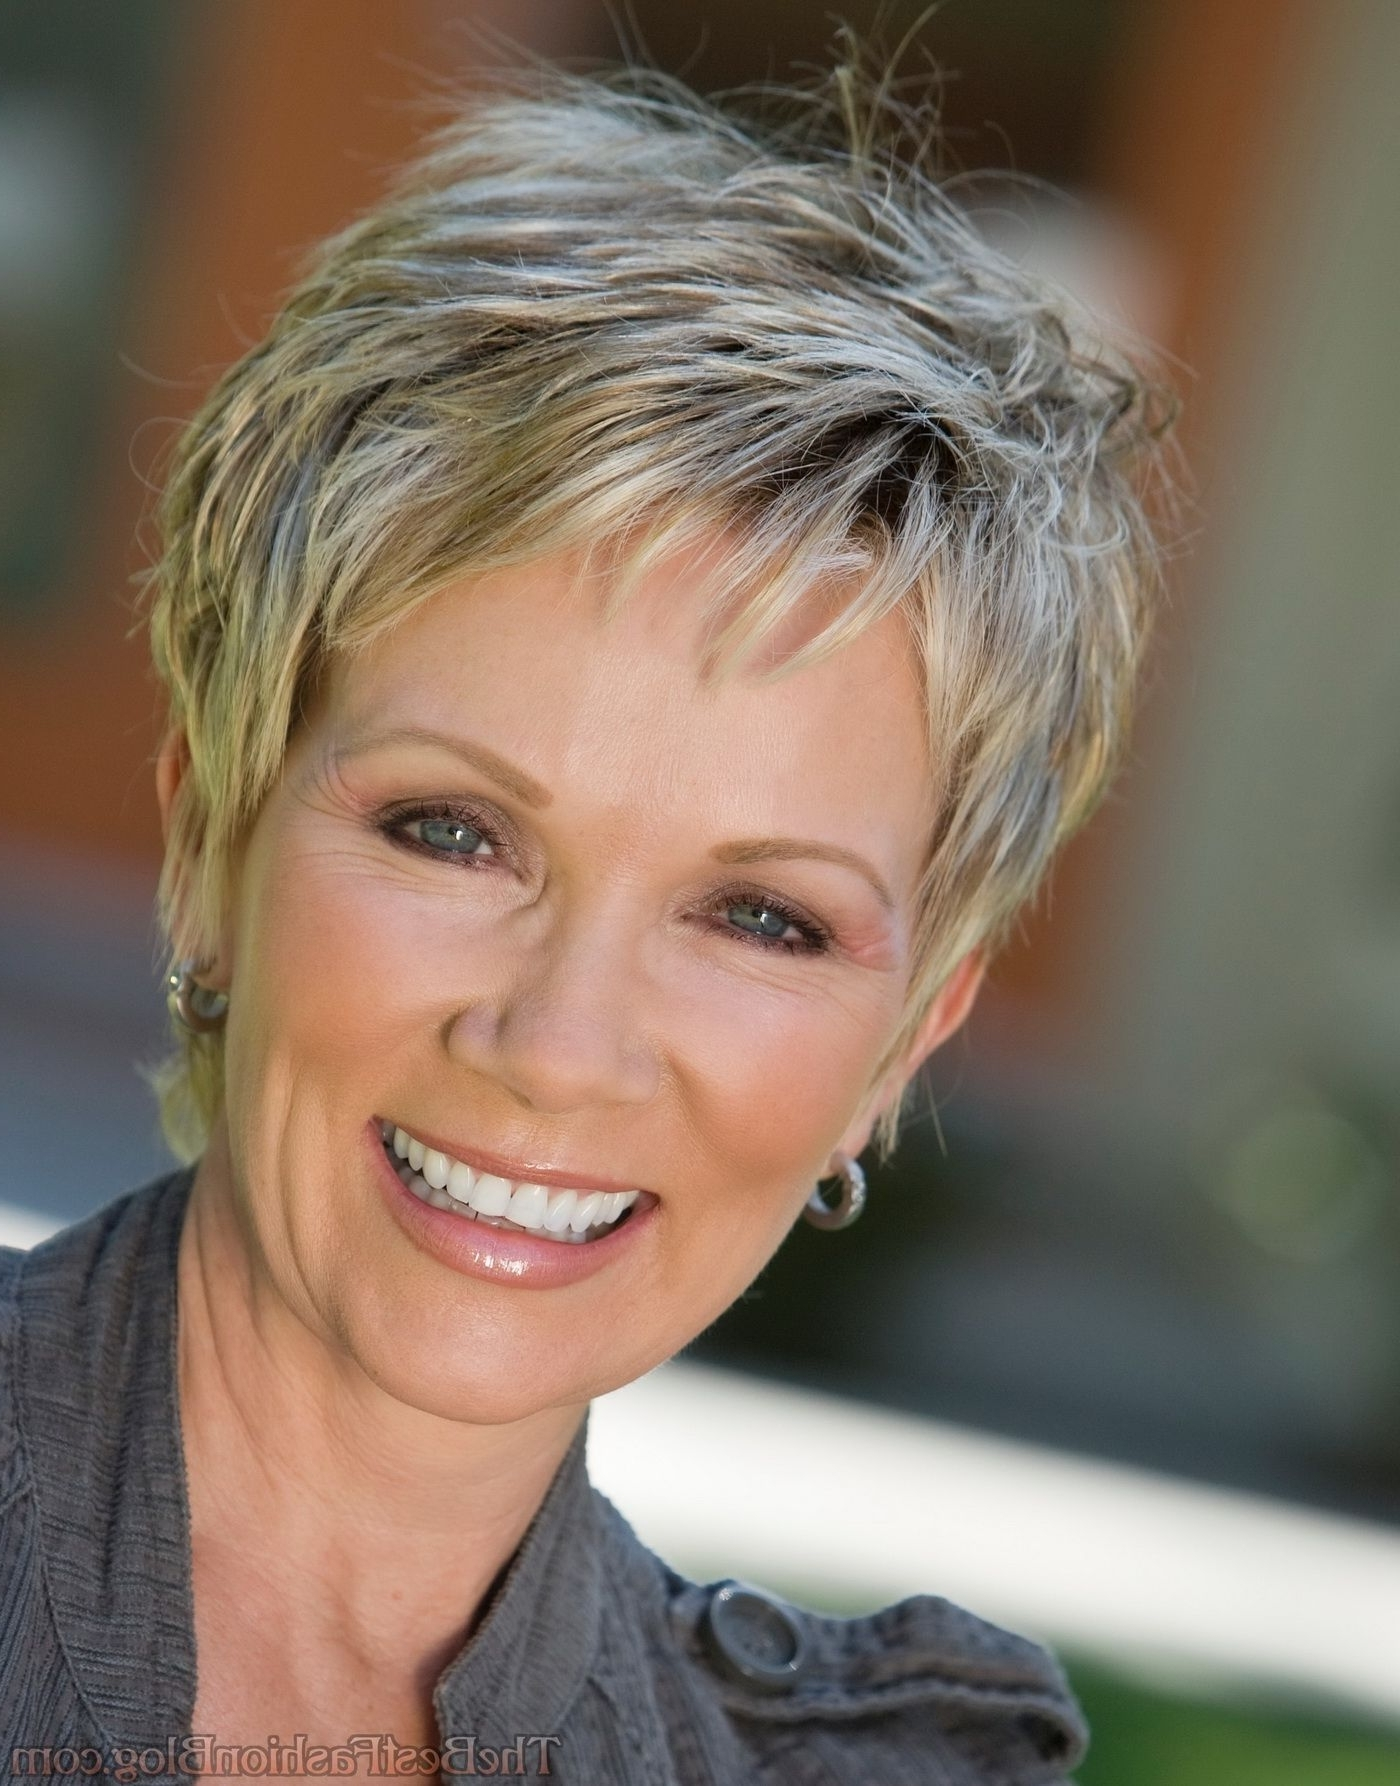 pixie haircuts for women over 60 pixie cuts for with glasses david simchi levi 2934 | image result for pixie haircuts for women over 60 fine hair hair with most popular pixie hairstyles for over 60